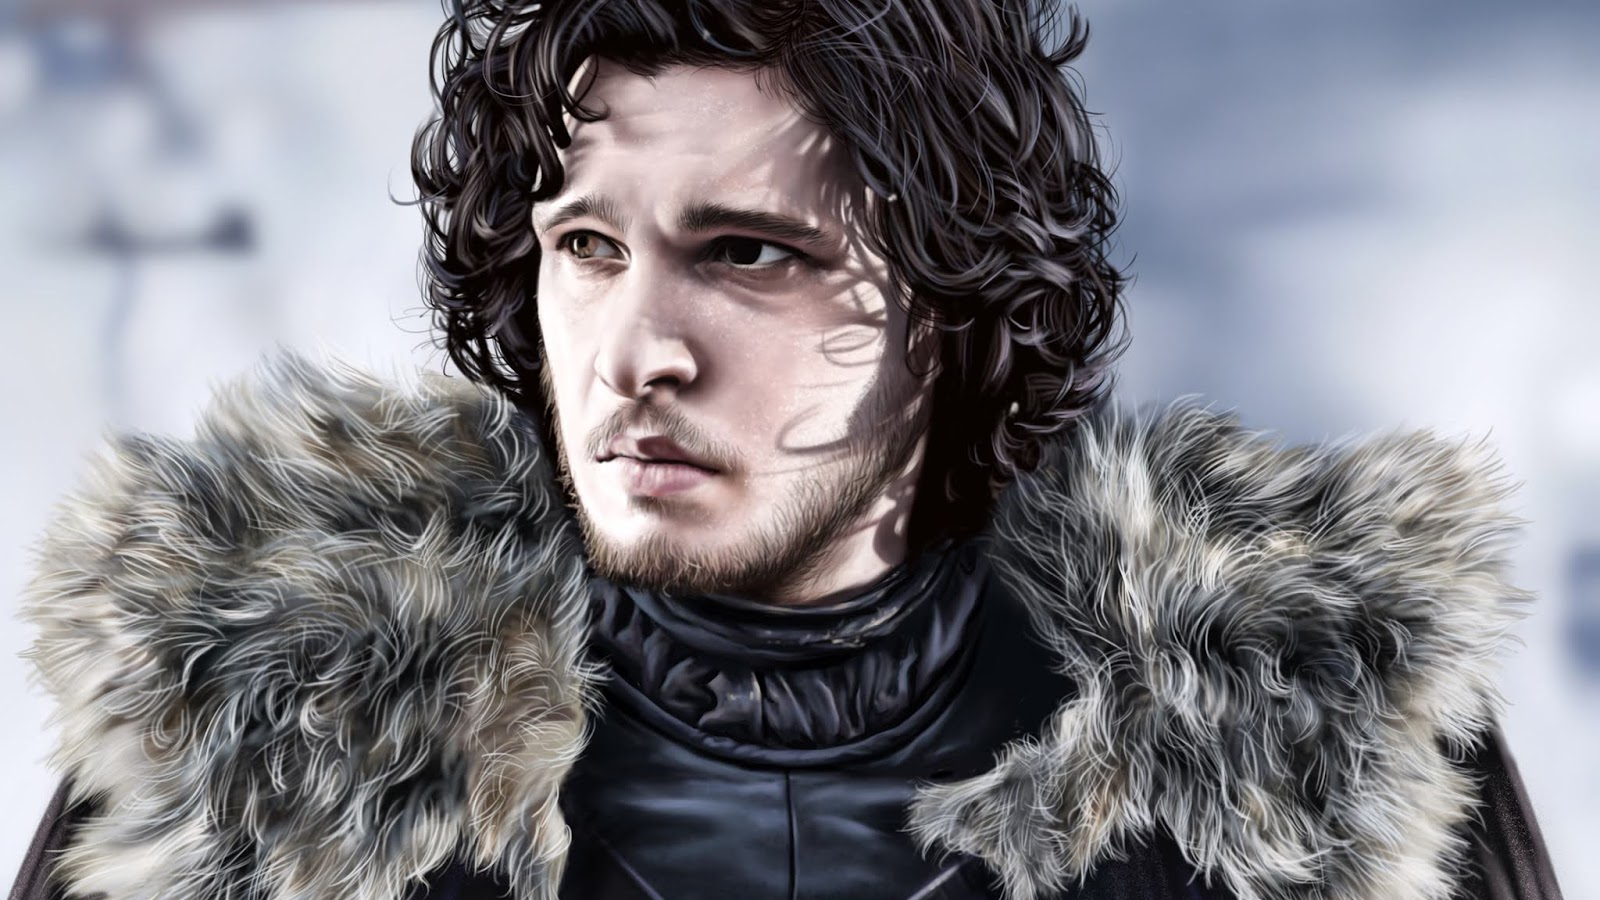 jon snow,wallpaper,wallpaper engine,wallpapers,snow,wallpaper engine wallpapers,2018 wallpaper engine wallpapers,wallpaper engine best wallpapers,game of thrones,jon,fortnite snow wallpaper,game of thrones wallpaper,2018 wallpaper engine,wallpaper engine 2018,wallpaper engine anime,jon snow speed art,wallpaper engine top 100,jon snow (book character),jon snow (tv personality),top 50 wallpaper engine wallpapers